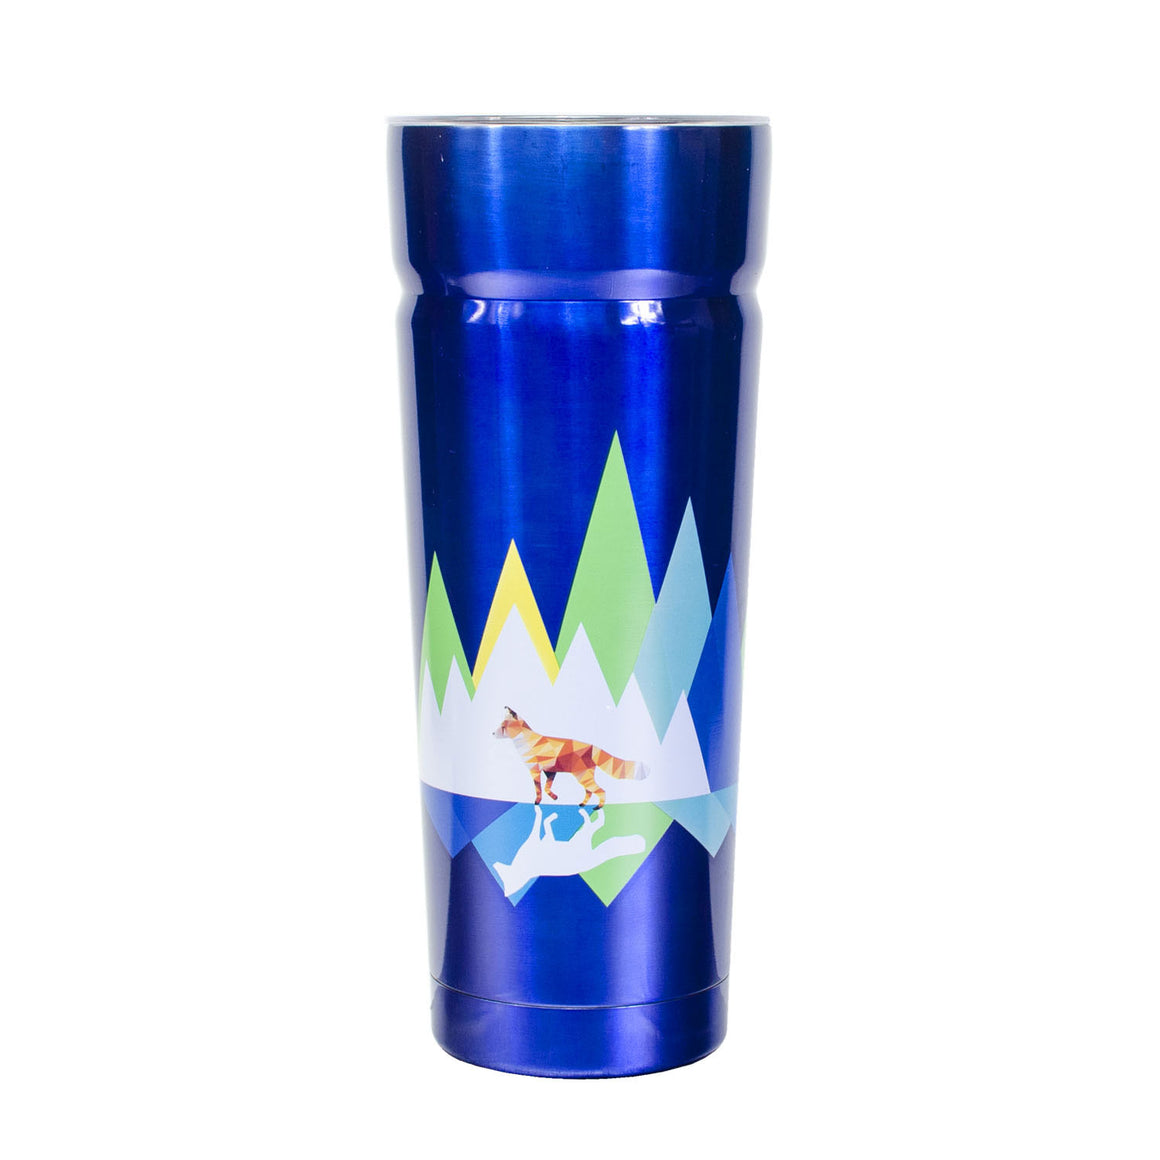 Black / Bikes Cayambe 30 Oz Printed Tumbler With Lid at Cool Gear Tumblers,Stainless Steel